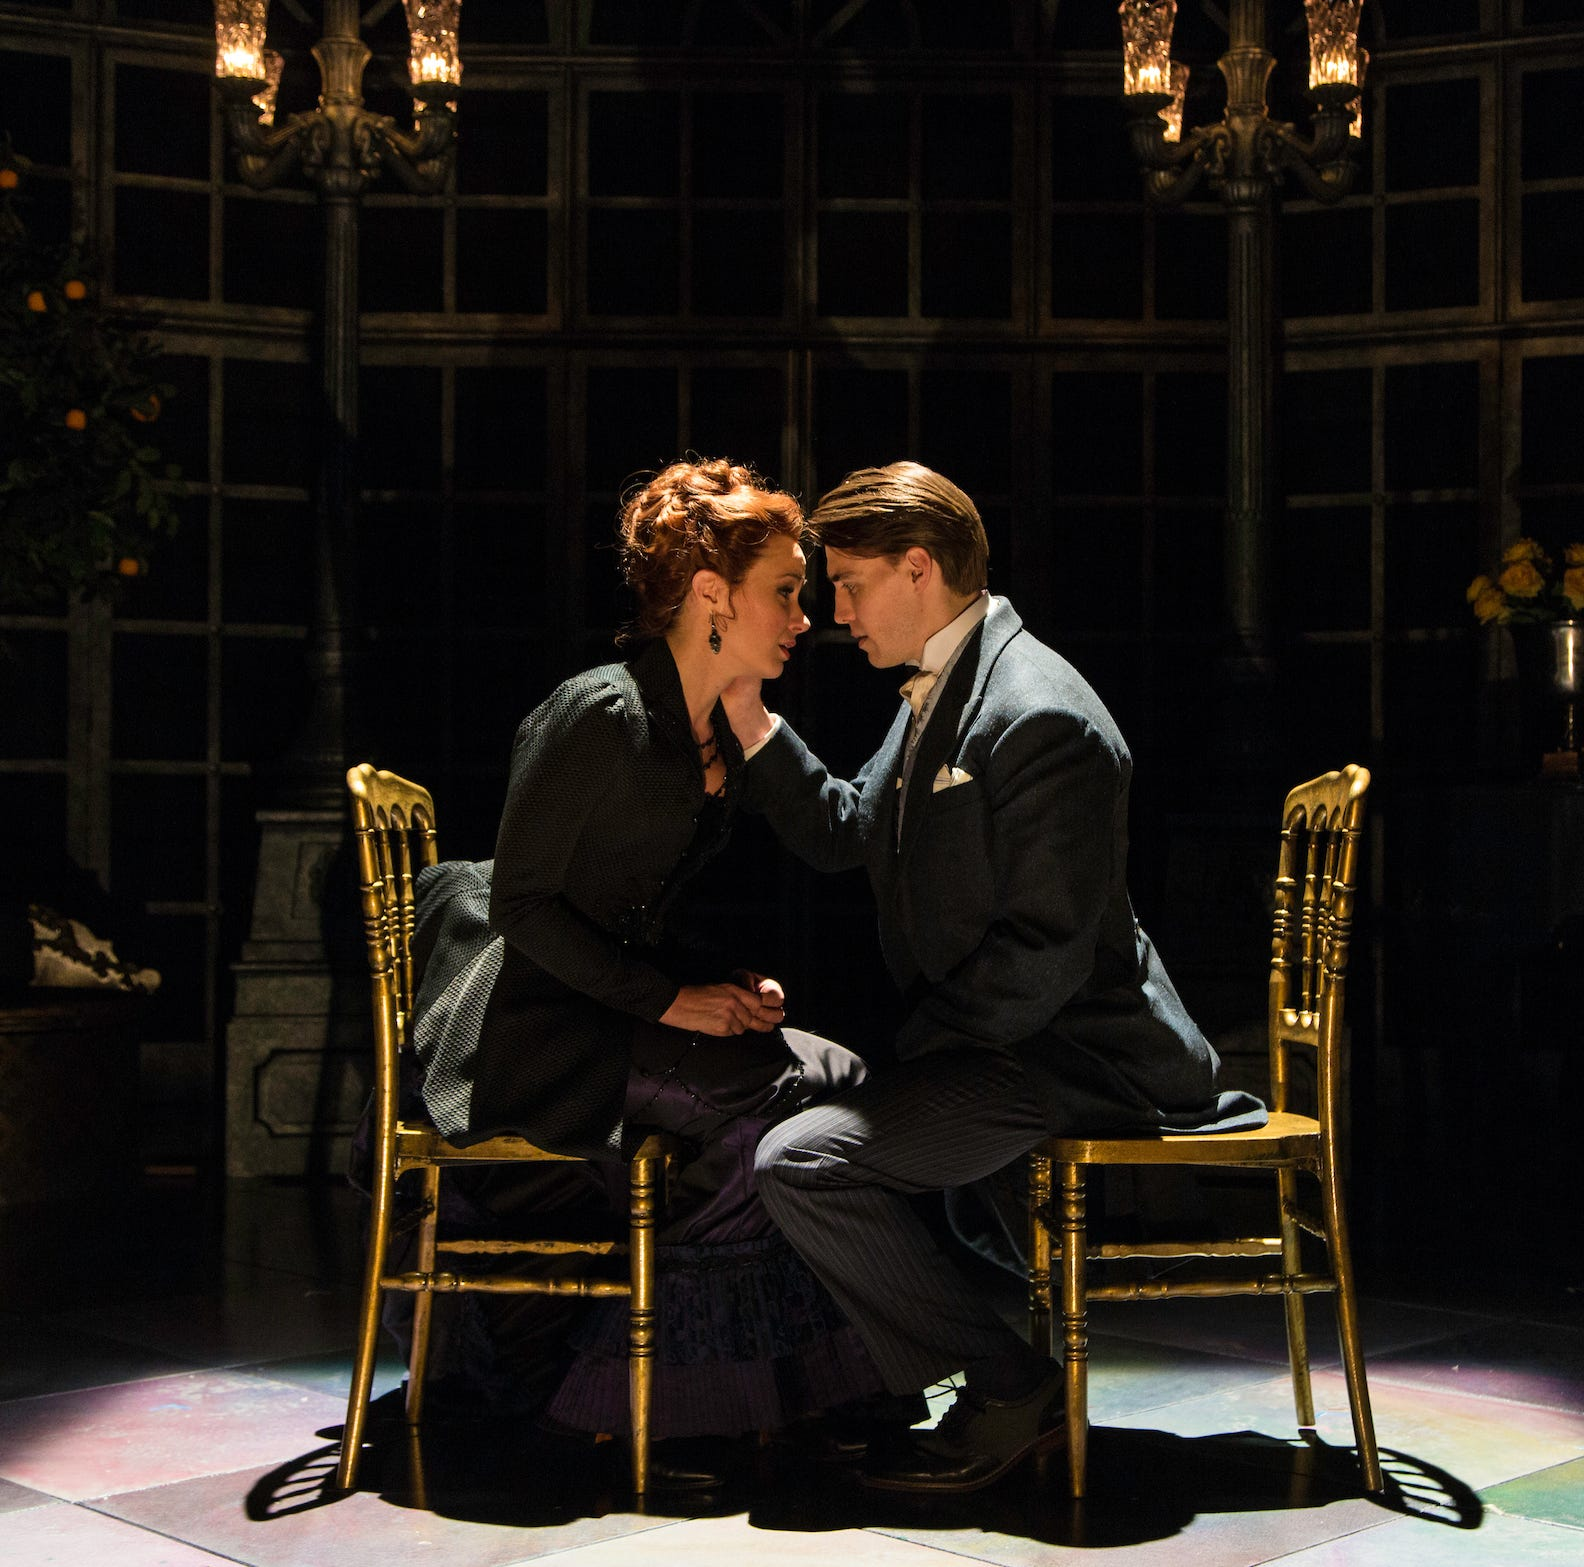 'The Age of Innocence' premiers at McCarter Theatre in Princeton